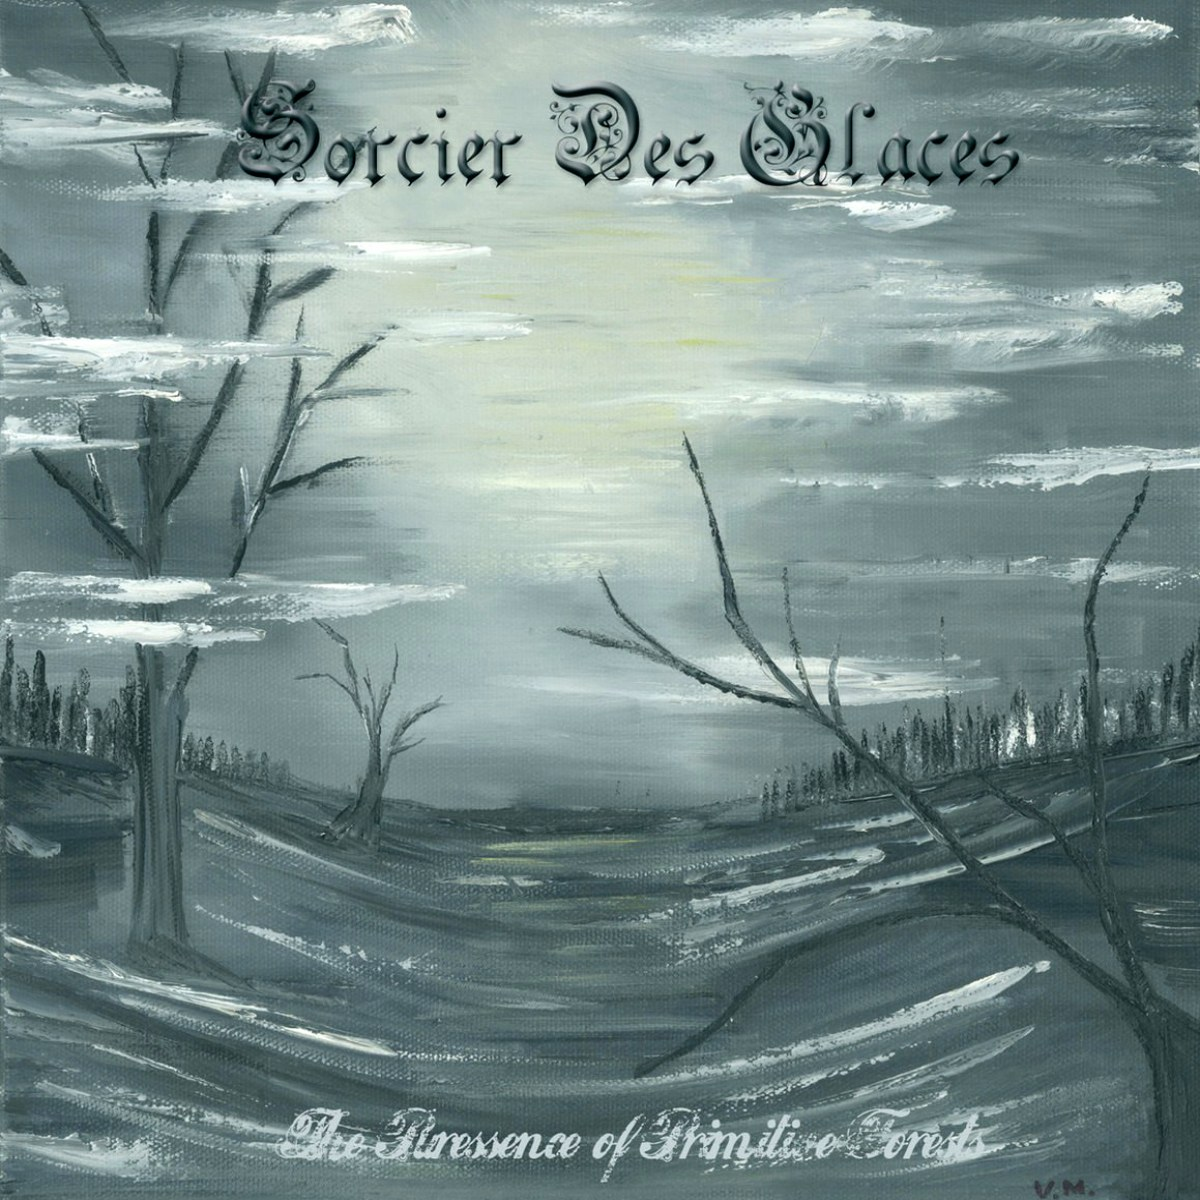 Review for Sorcier des Glaces - The Puressence of Primitive Forests